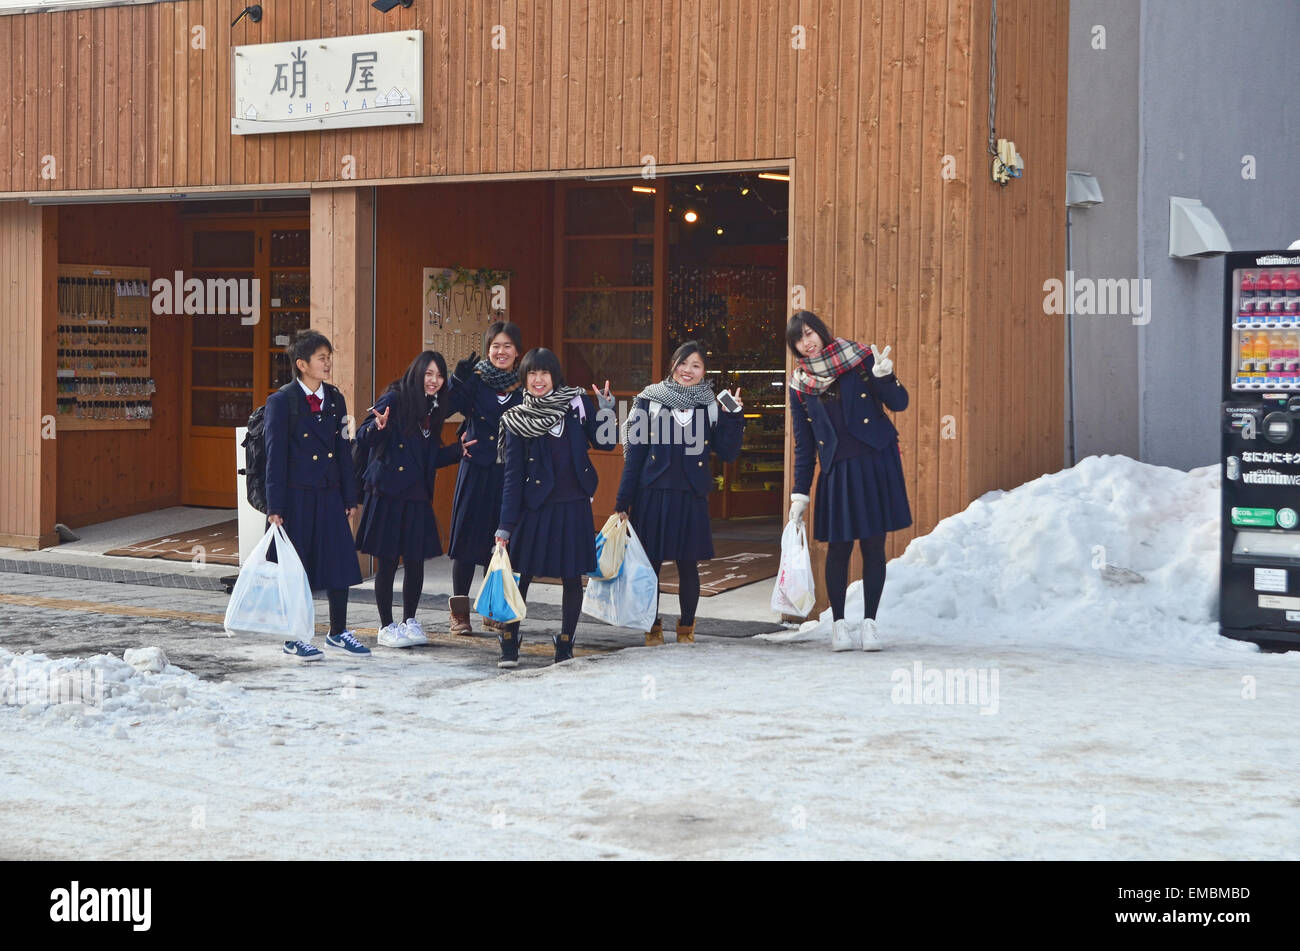 A group of Japanese Junior High School student girls - Stock Image